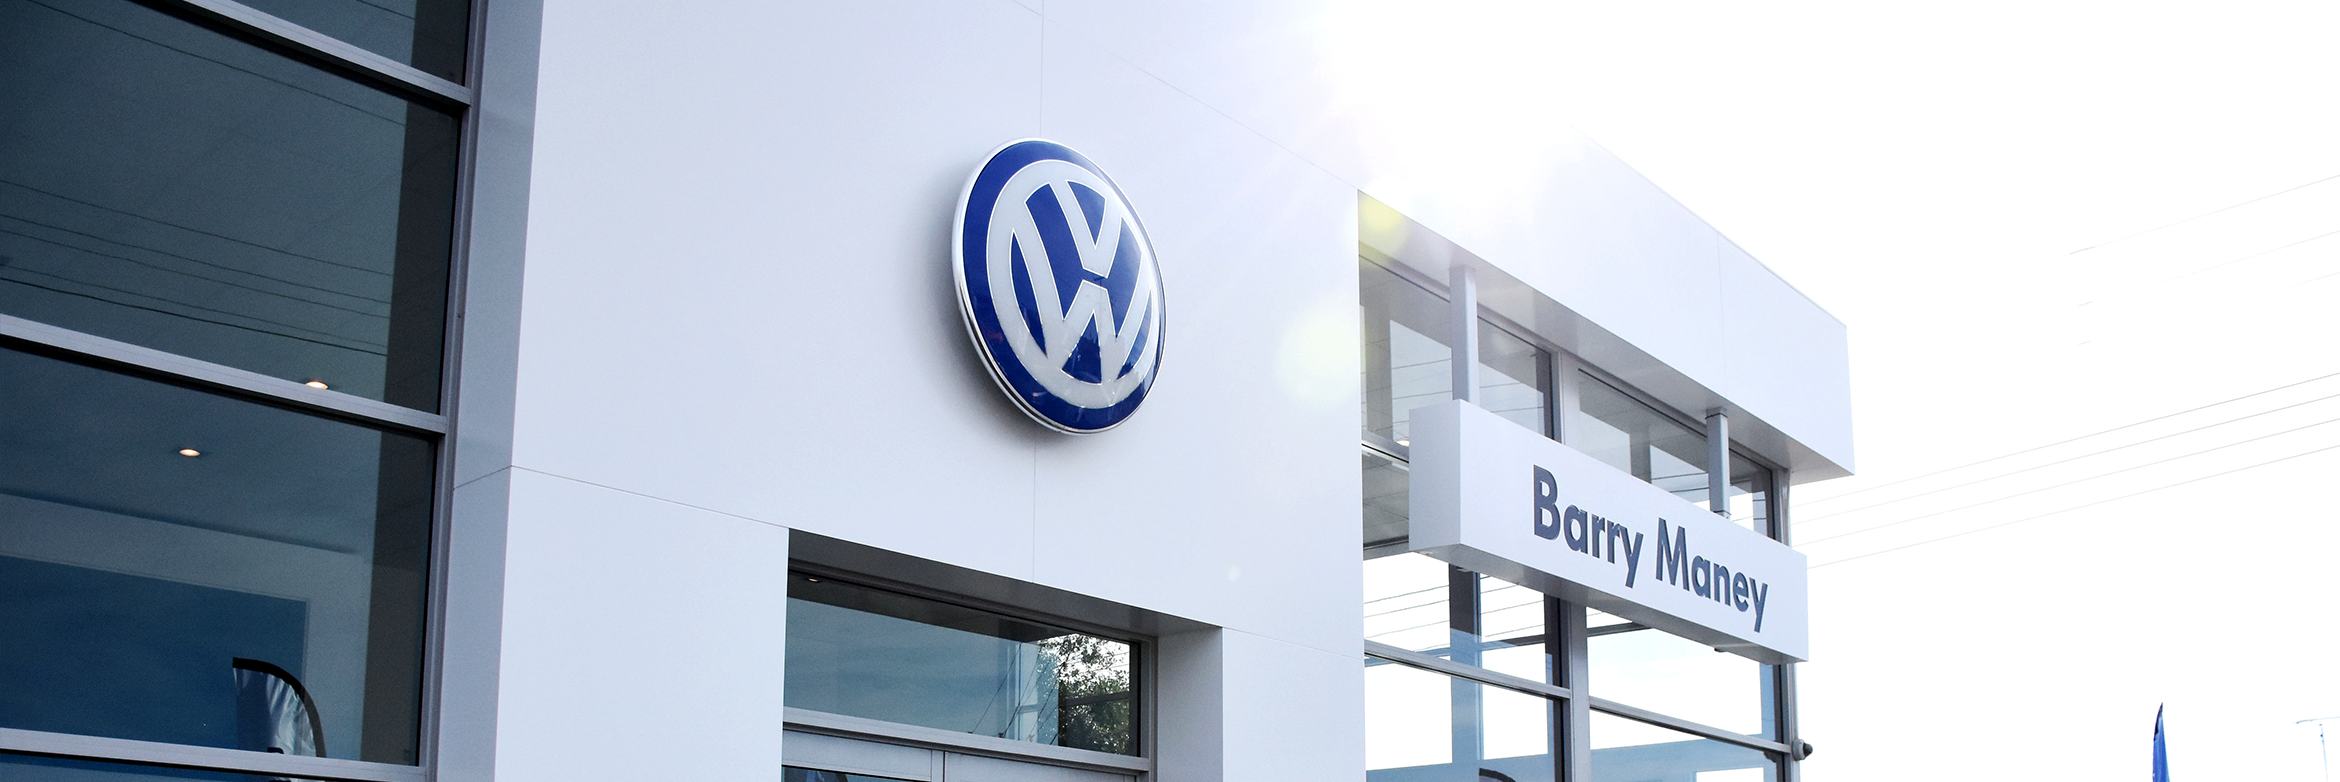 Barry Maney Volkswagen - CMV Group